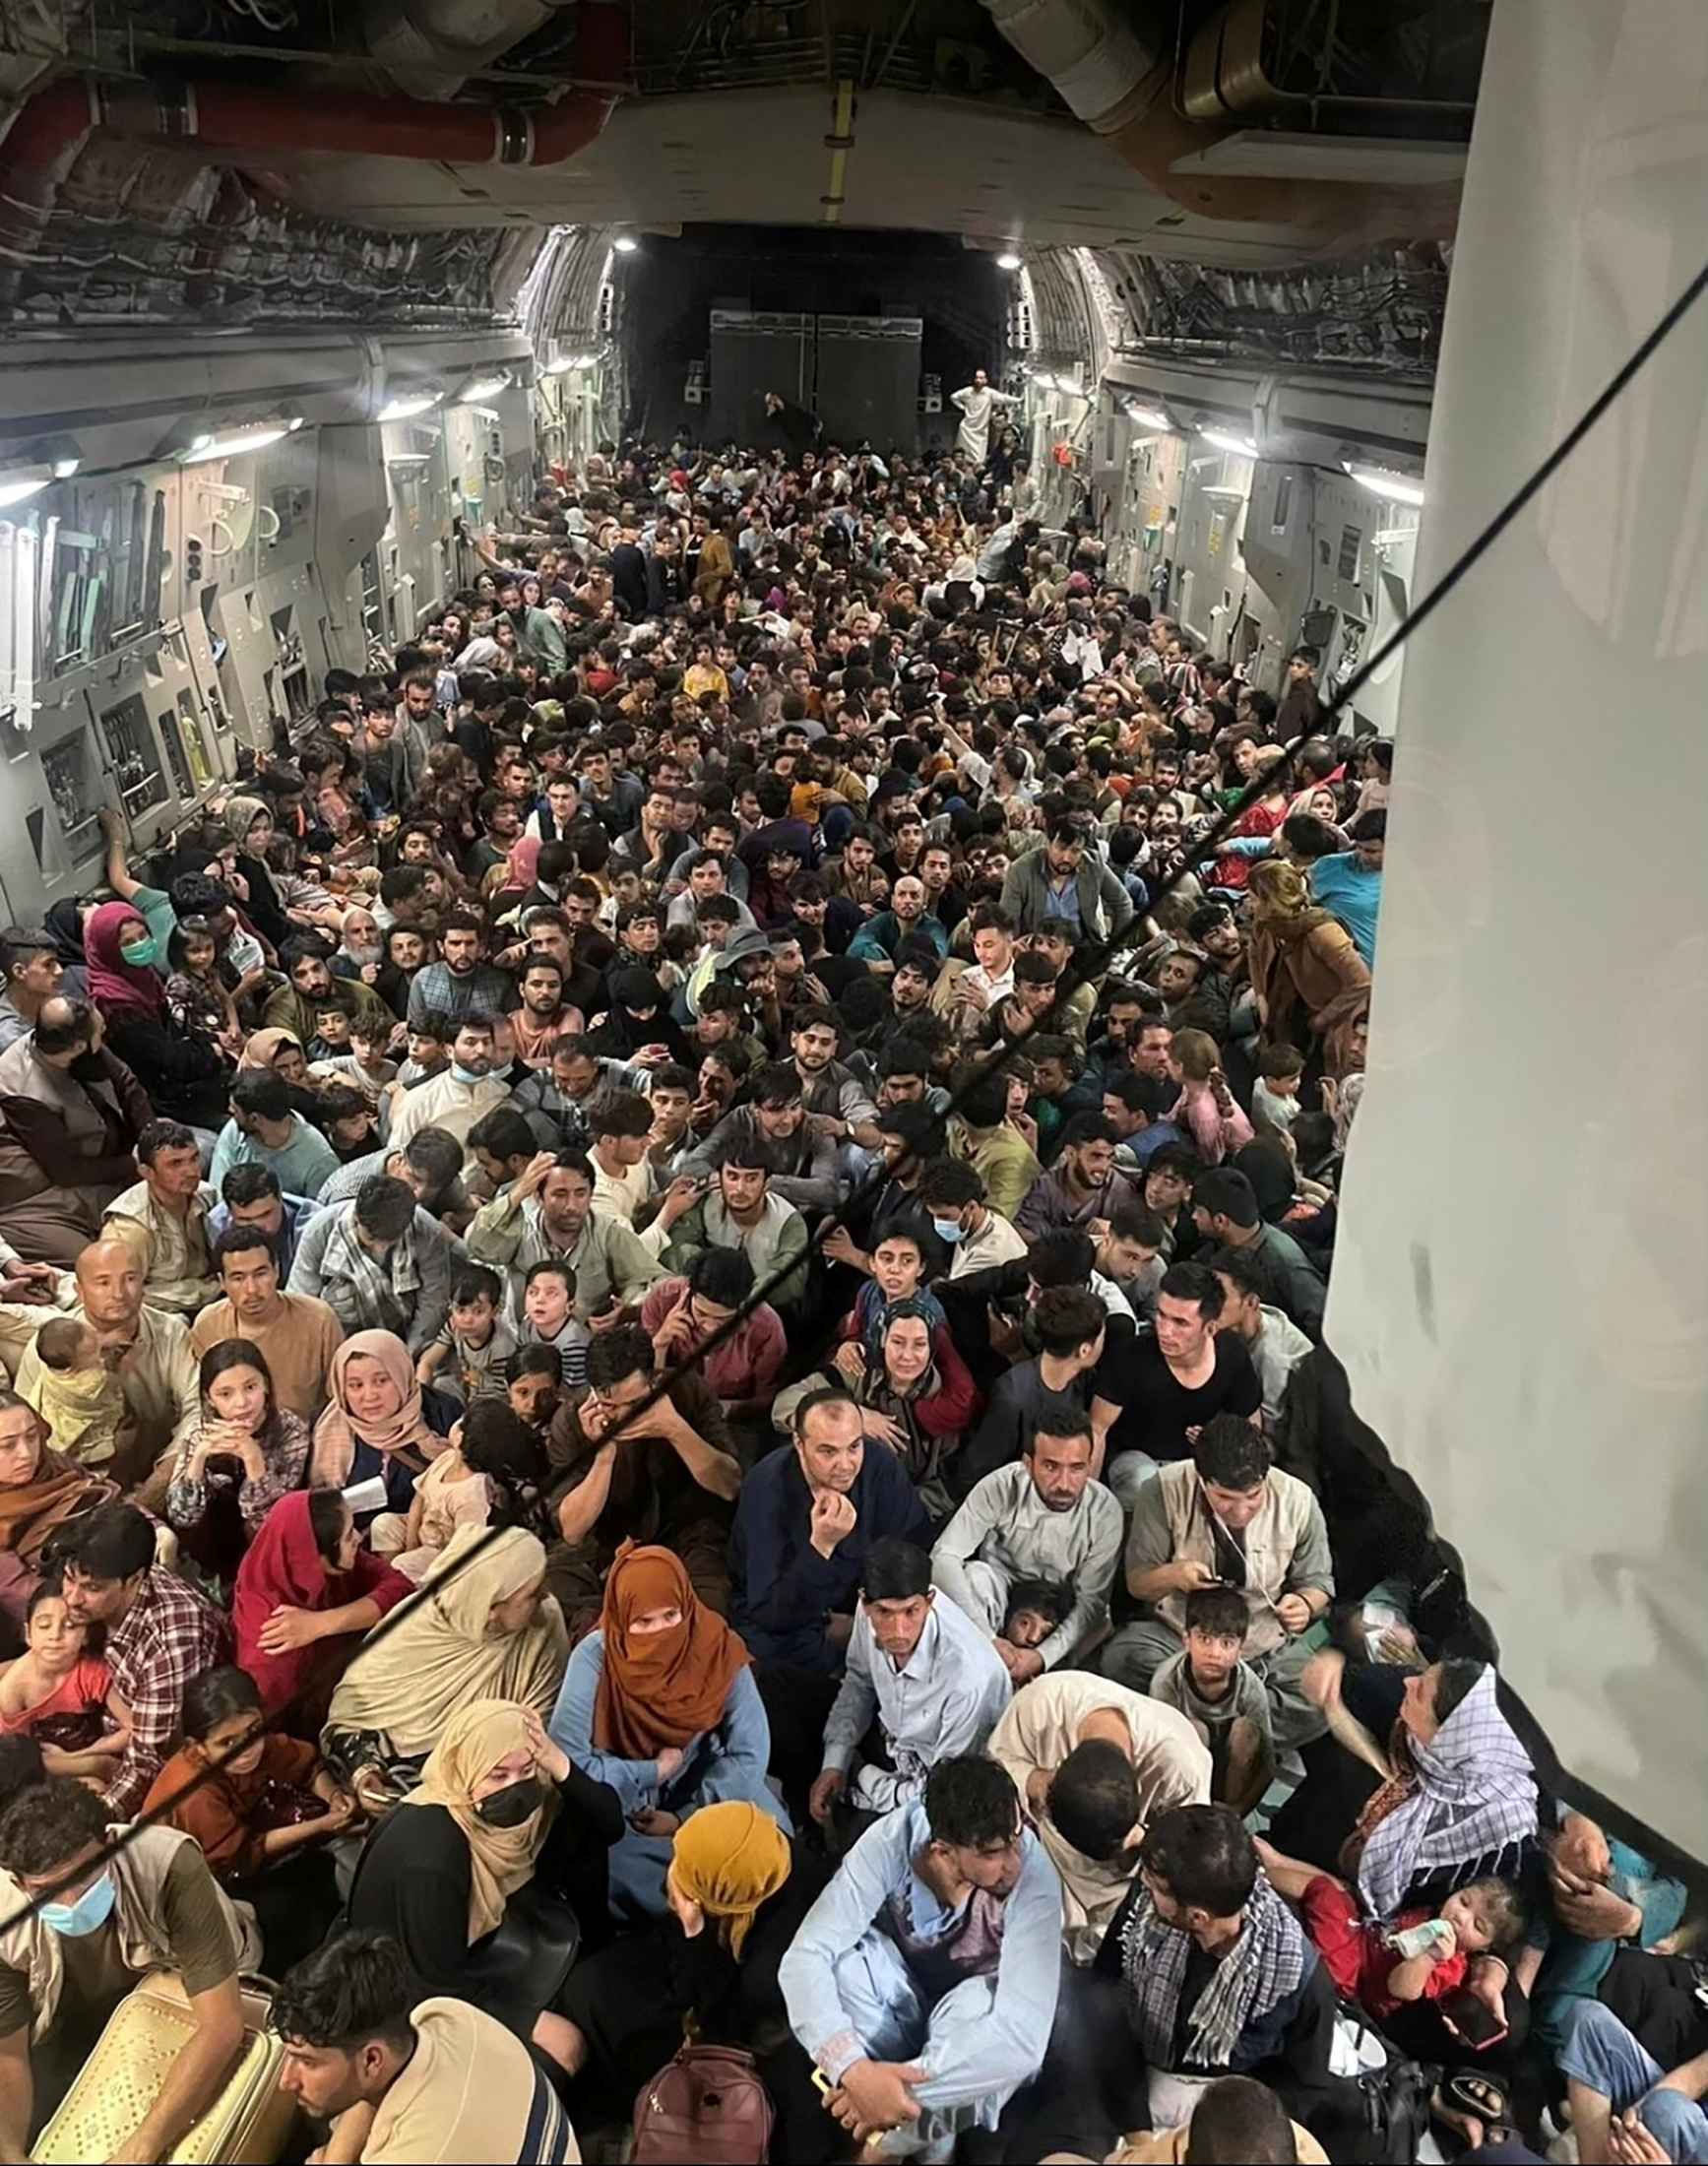 Evacuees crowd the interior of a U.S. Air Force C-17 Globemaster III transport aircraft, carrying some 640 Afghans to Qatar from Kabul, Afghanistan August 15, 2021. Picture taken August 15, 2021.  U.S. Air Force/Handout via REUTERS